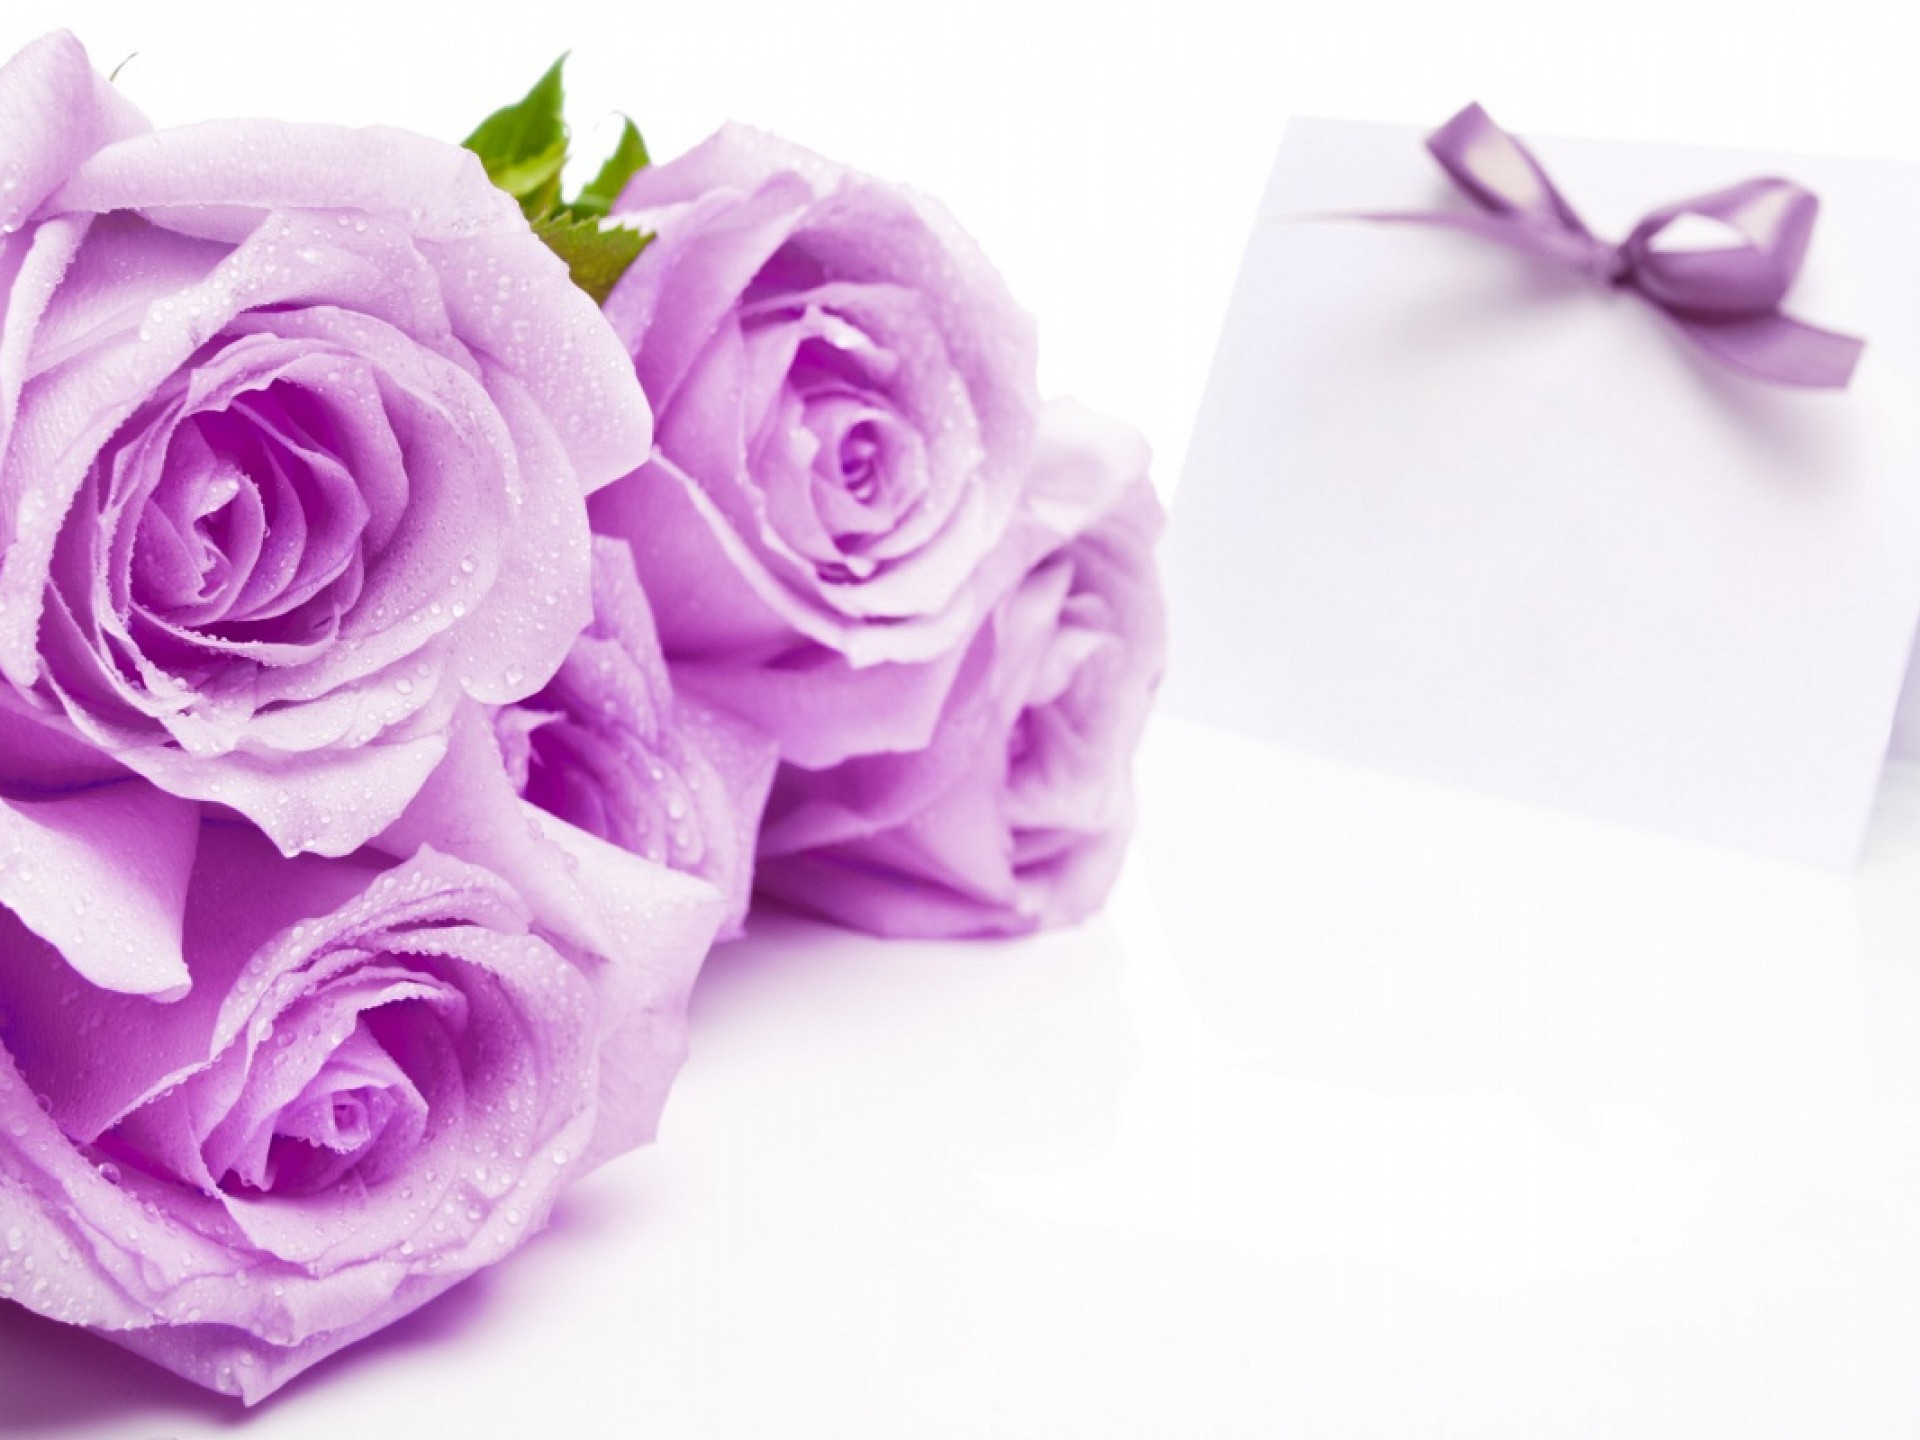 Res: 1920x1440, Farben images Purple Rose Hintergrund HD wallpaper and background photos